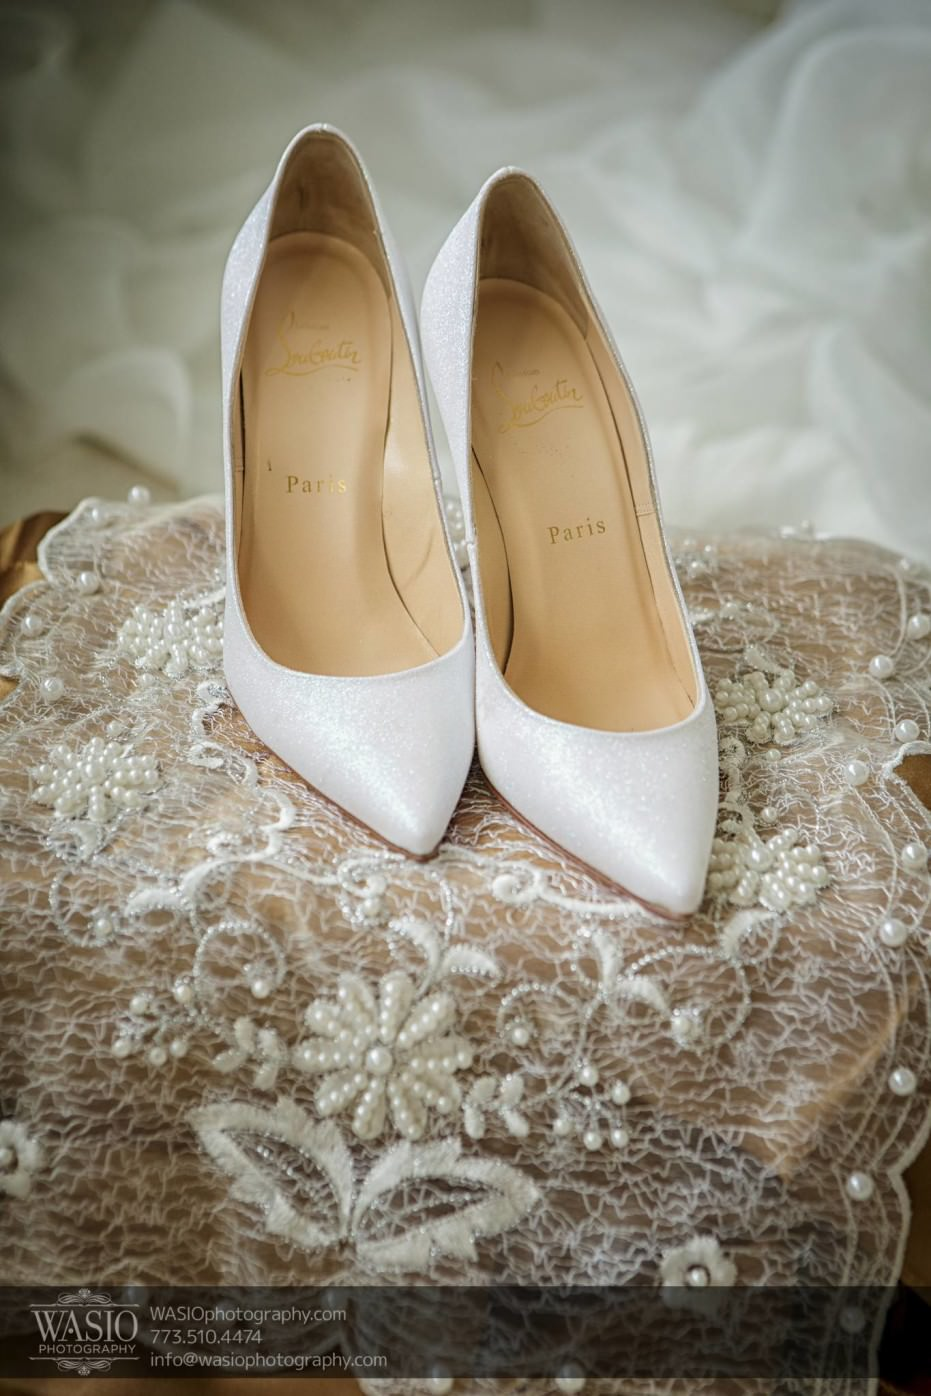 Country-club-wedding-white-shoes-louboutin-red-sole-0059-931x1396 The Country Club Wedding - Nicole + Dean